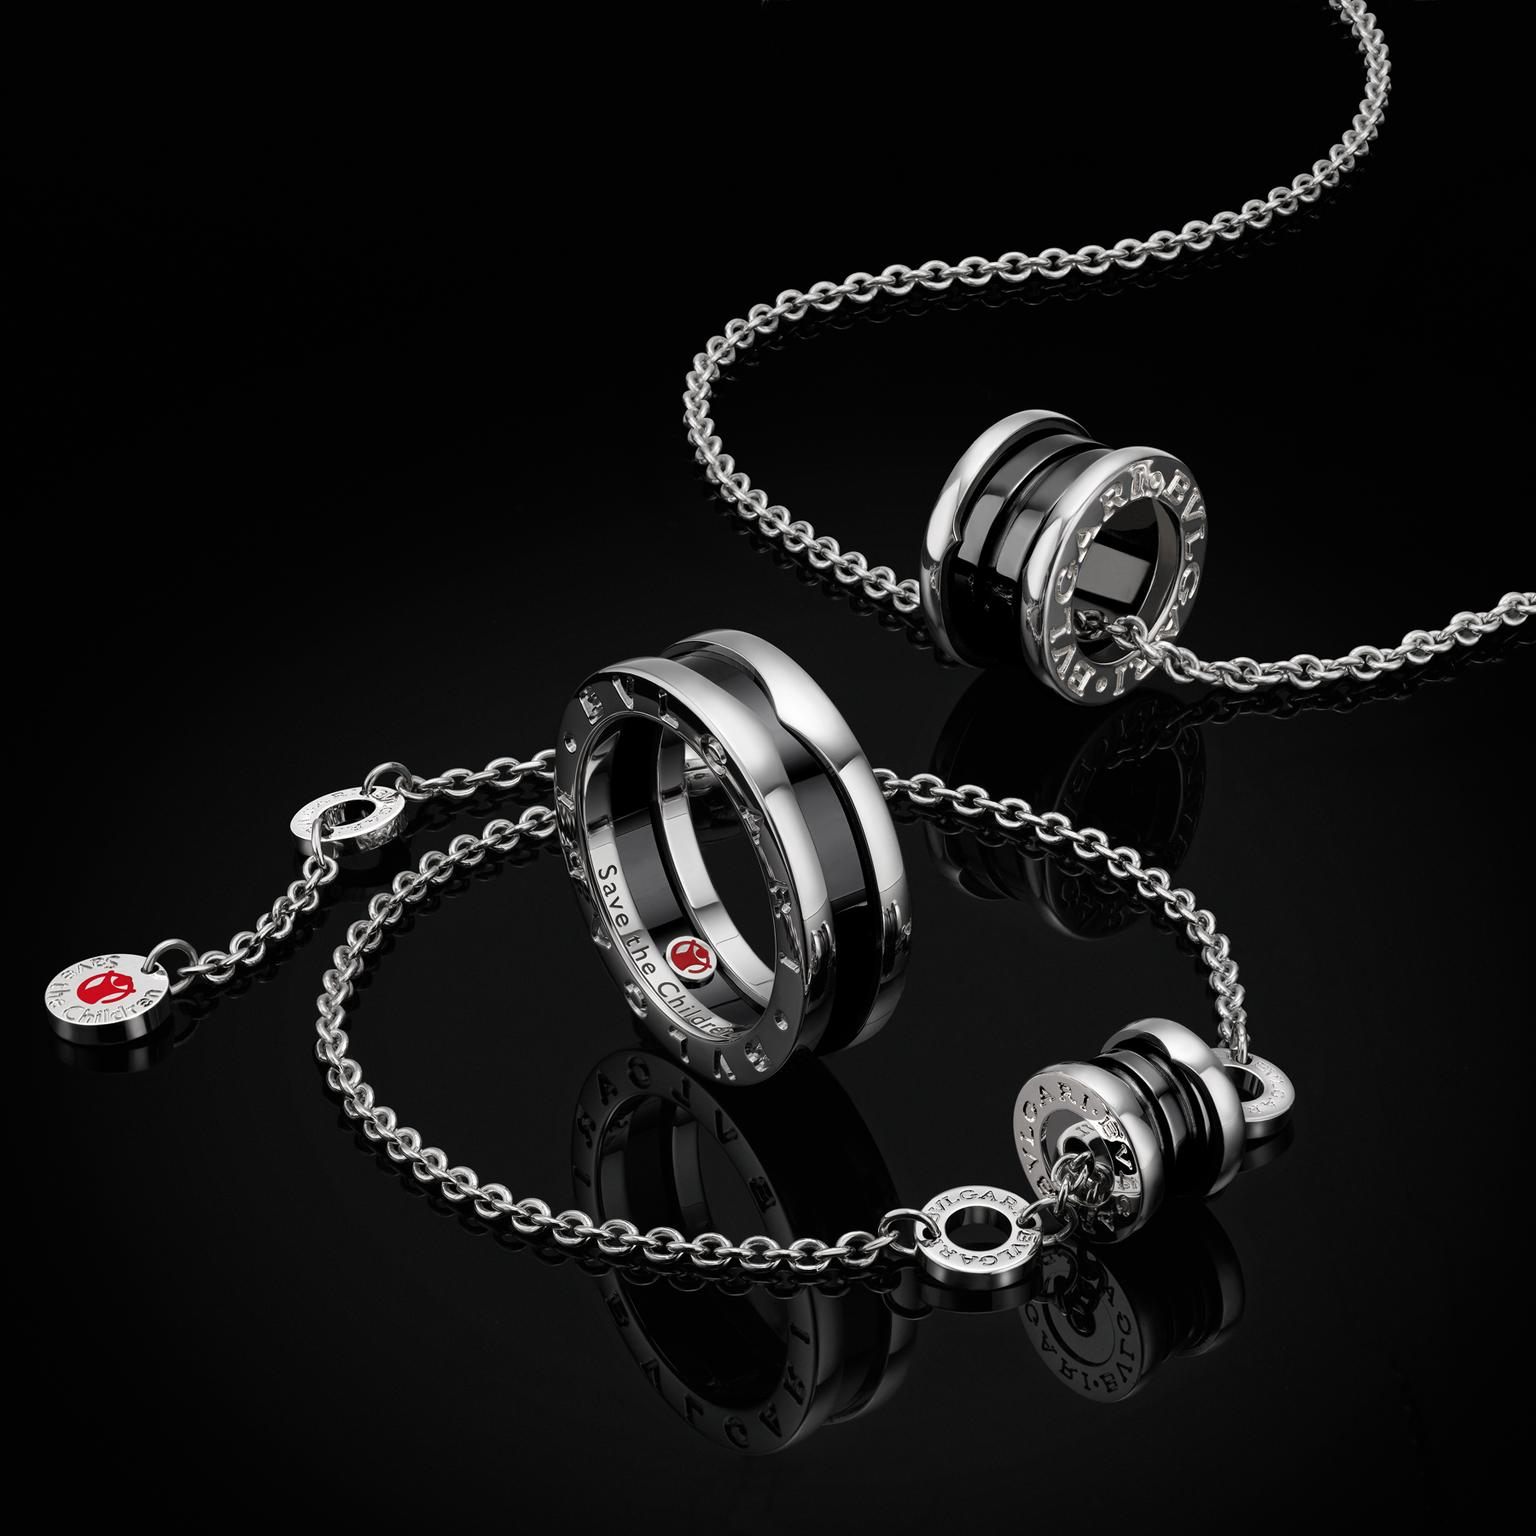 Bulgari silver jewels for Save the Children